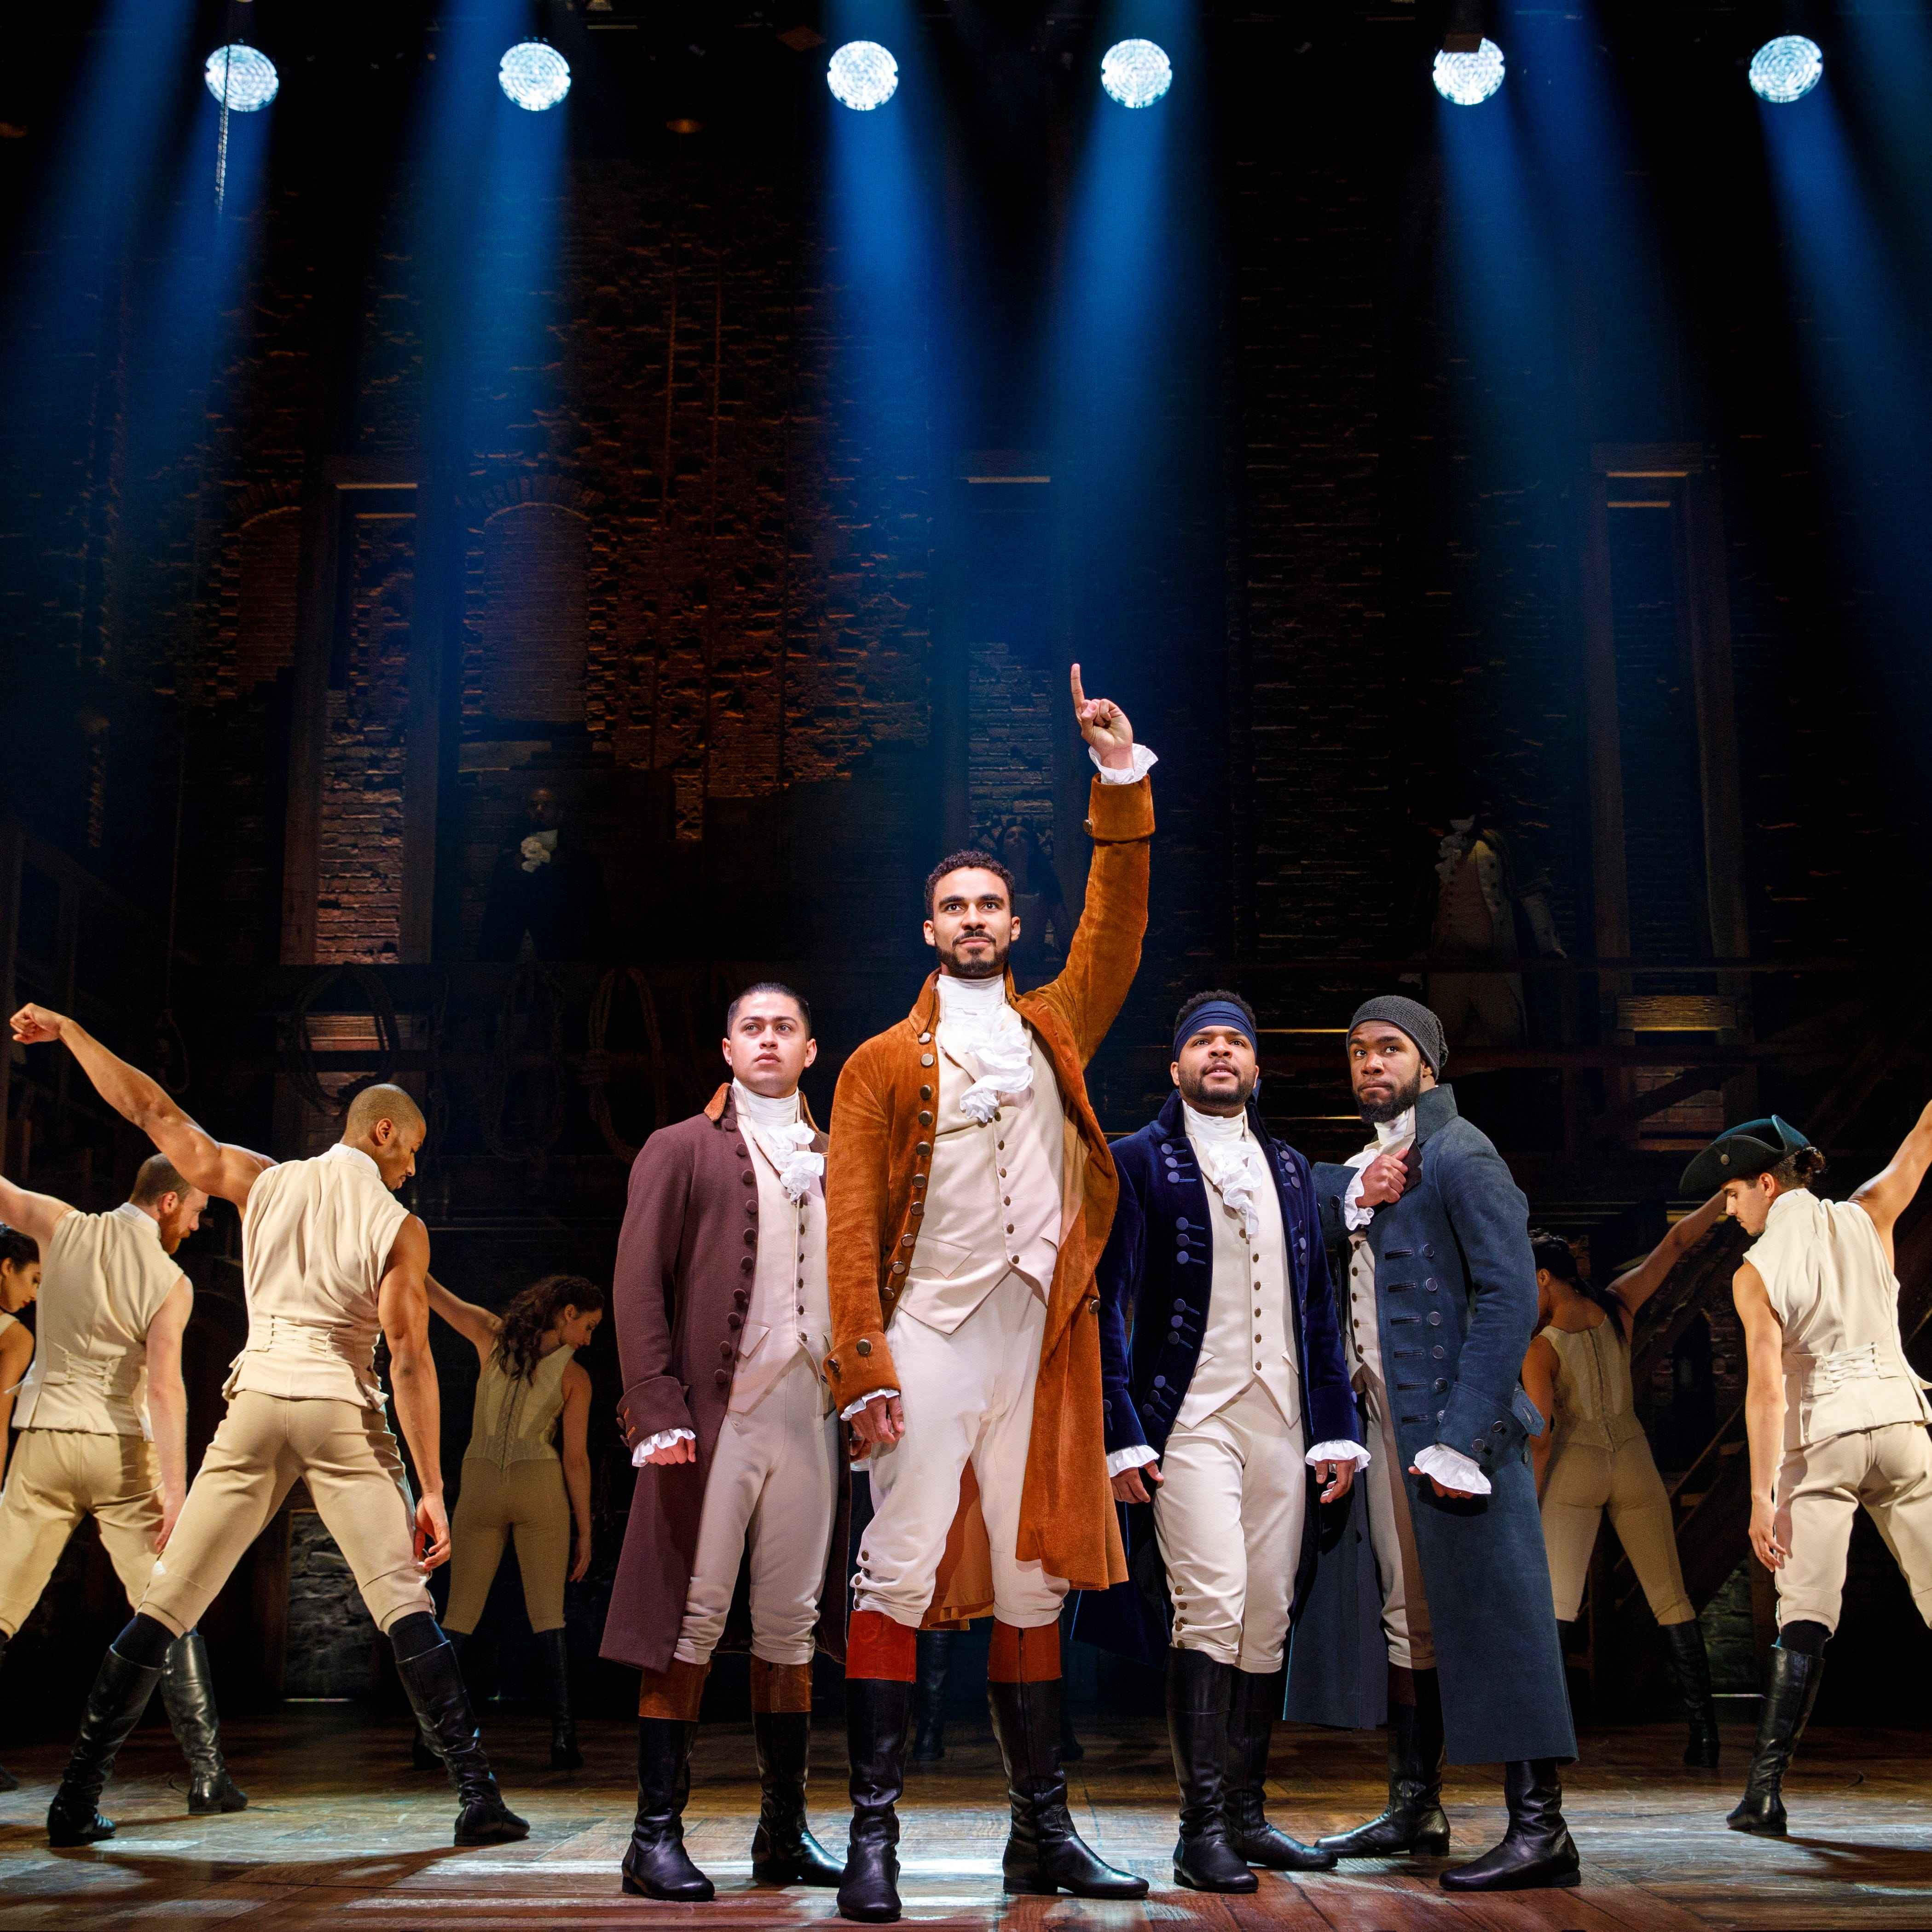 'Hamilton' tickets up for grabs for lucky winners in Artis—Naples survey lottery